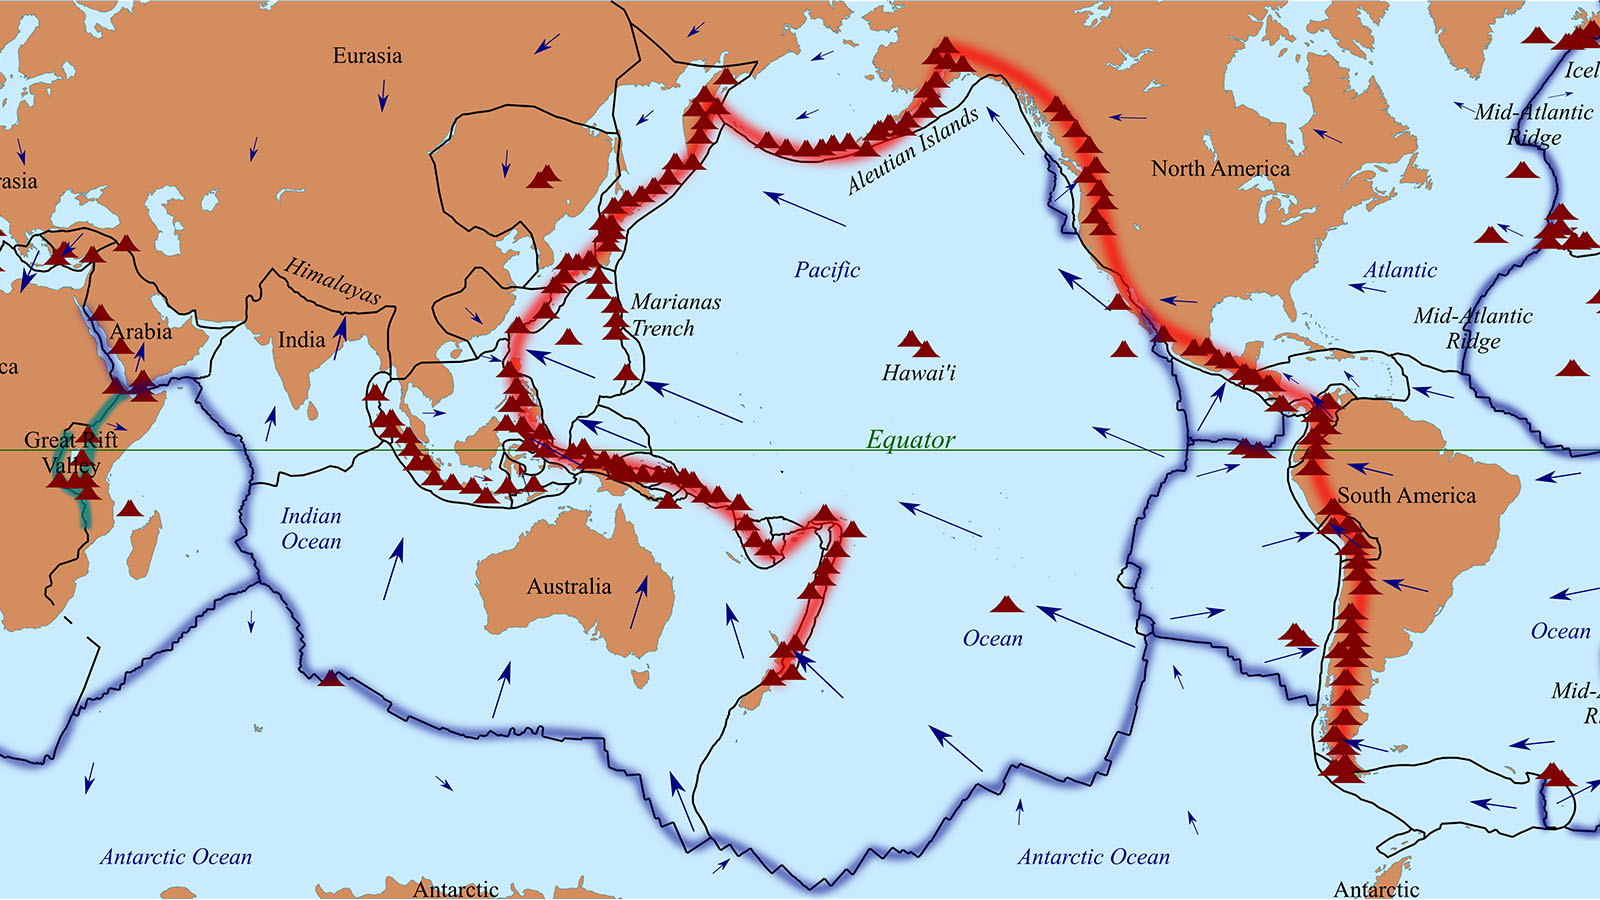 7 Hot Facts About the Pacific Ring of Fire   HowStuffWorks